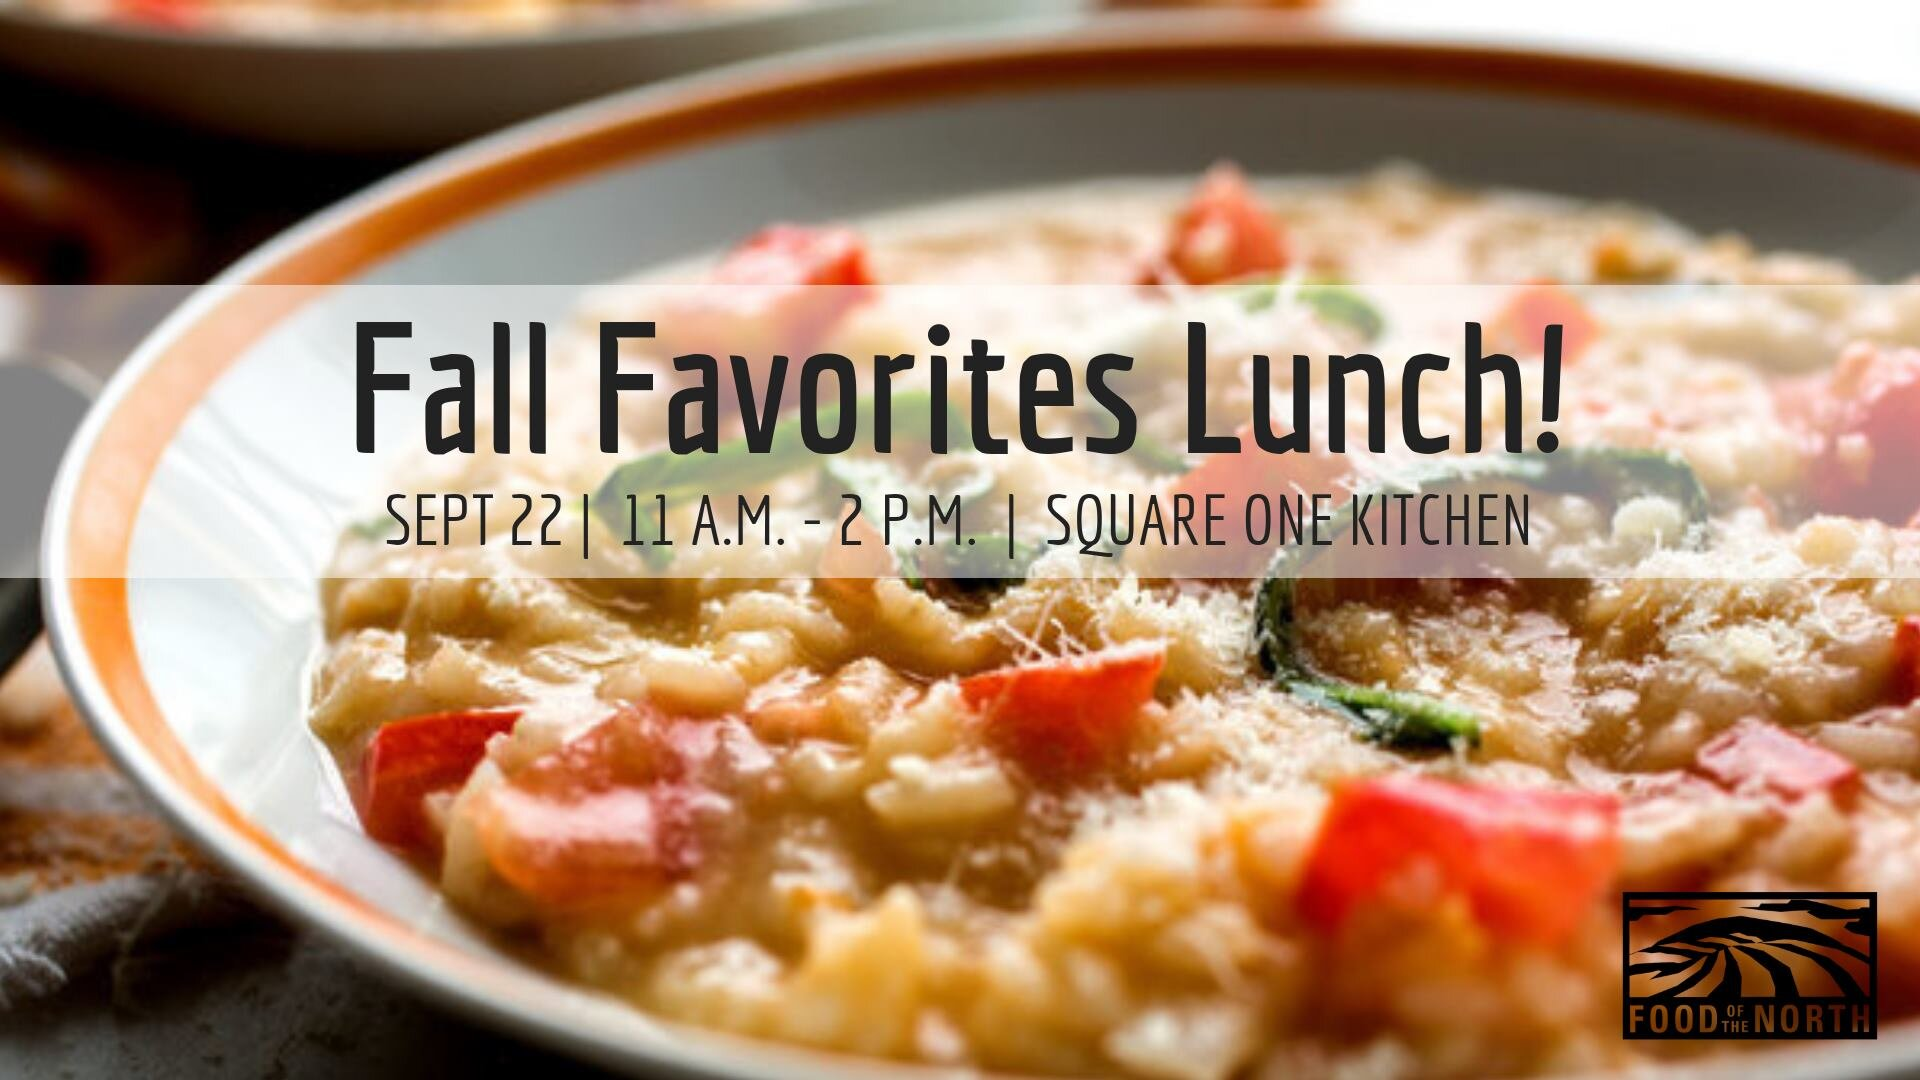 September 2019  - We partnered with Heart-n-Soul Community Cafe for a Fall Favorites Lunch featuring a meal created by our own Megan Myrdal. The menu included  Tomato & White Bean Risotto , Grilled Bread and Apple Crisp for dessert.    [View recipe]